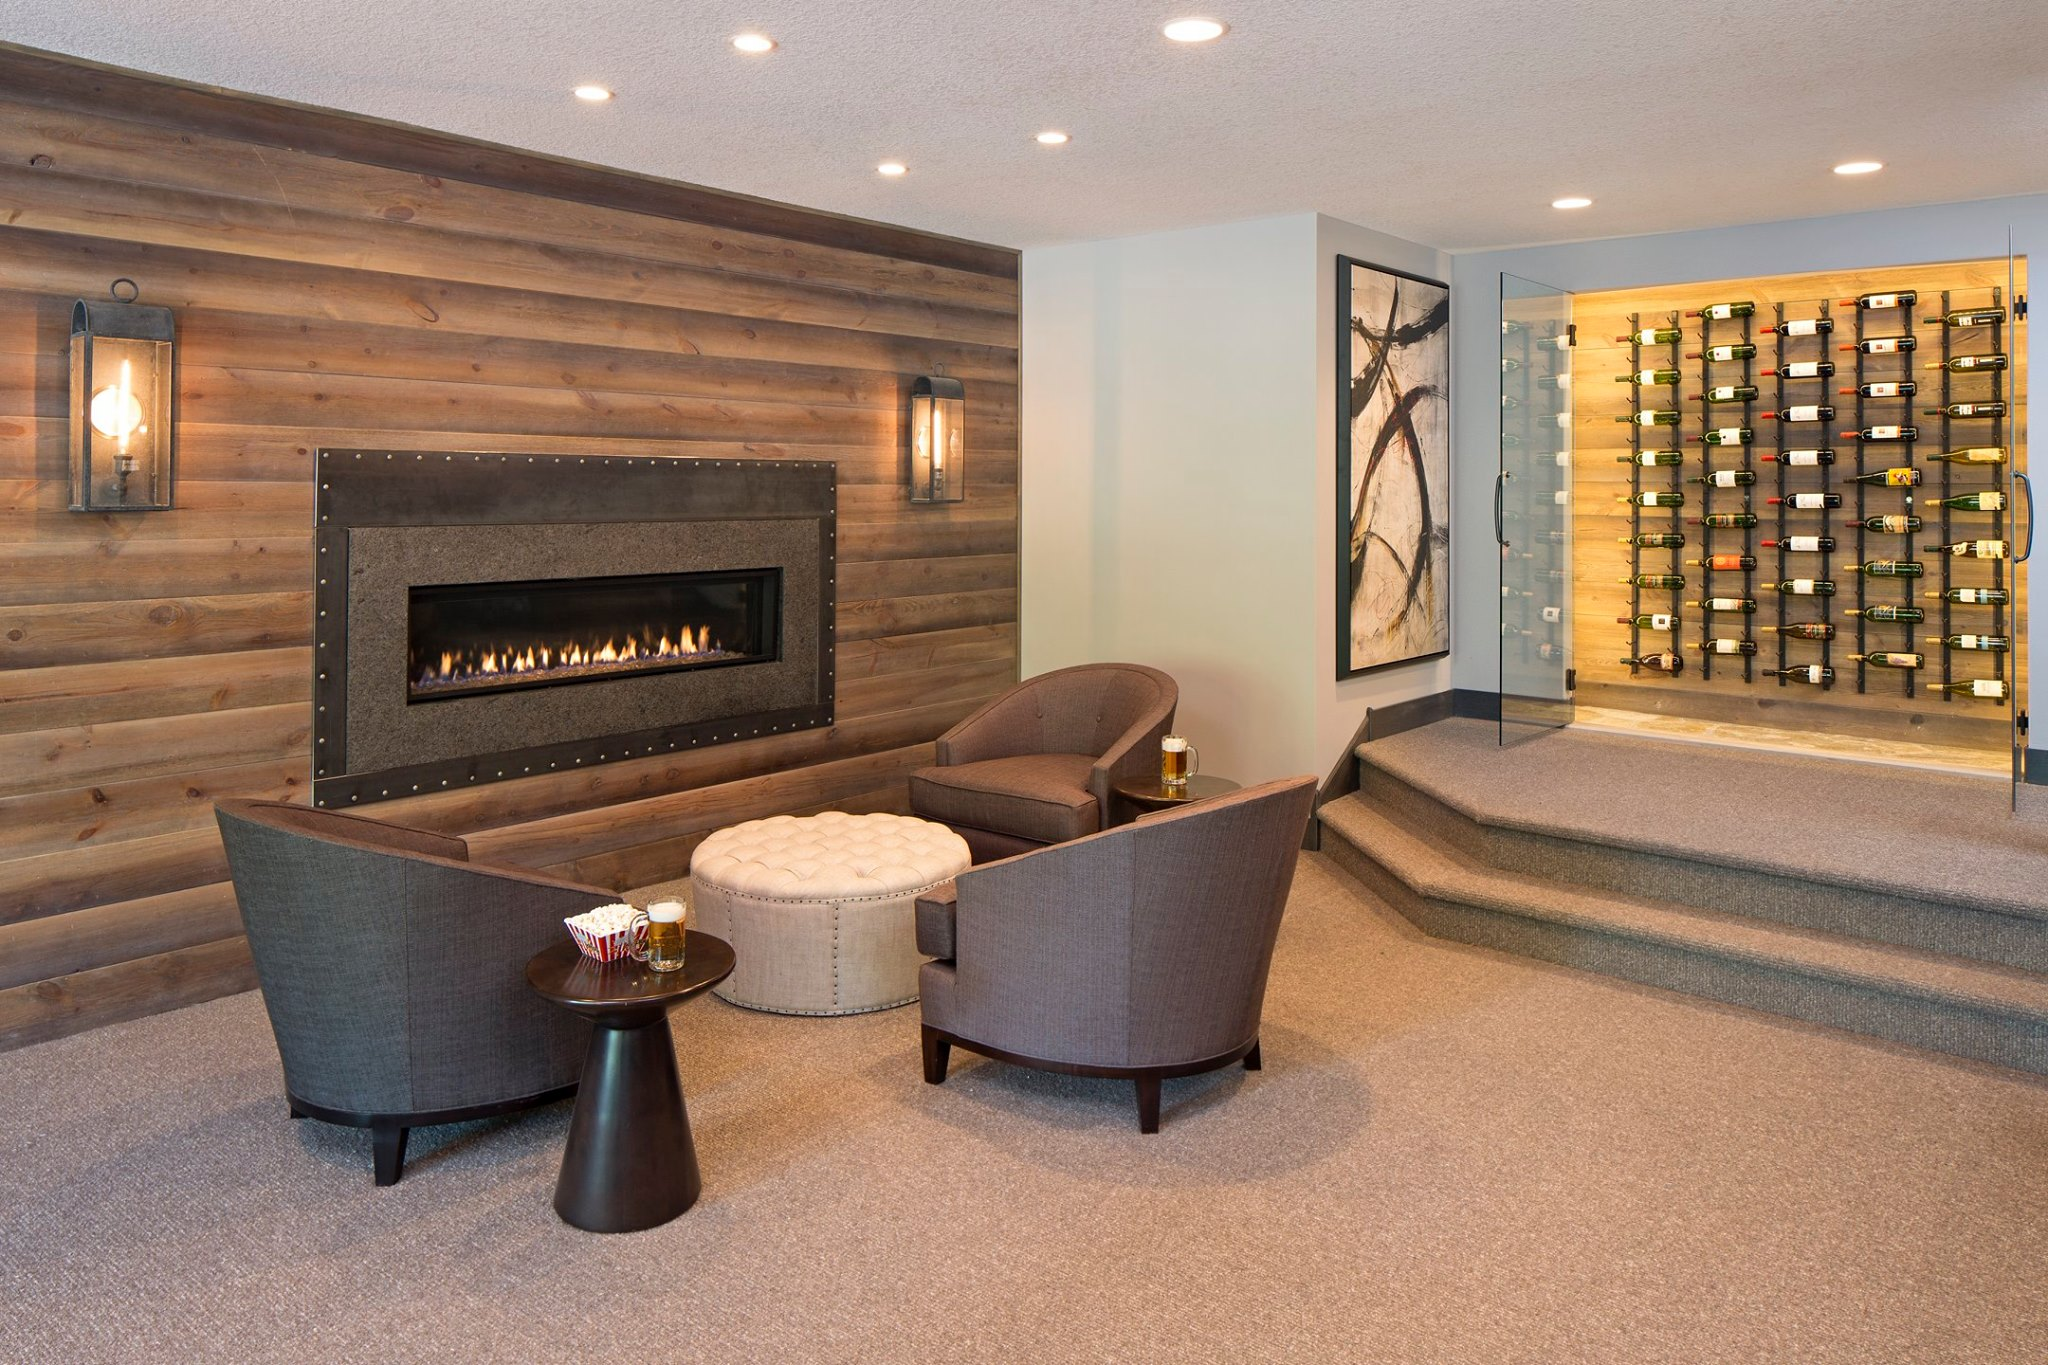 One piece granite fireplace surround in basement